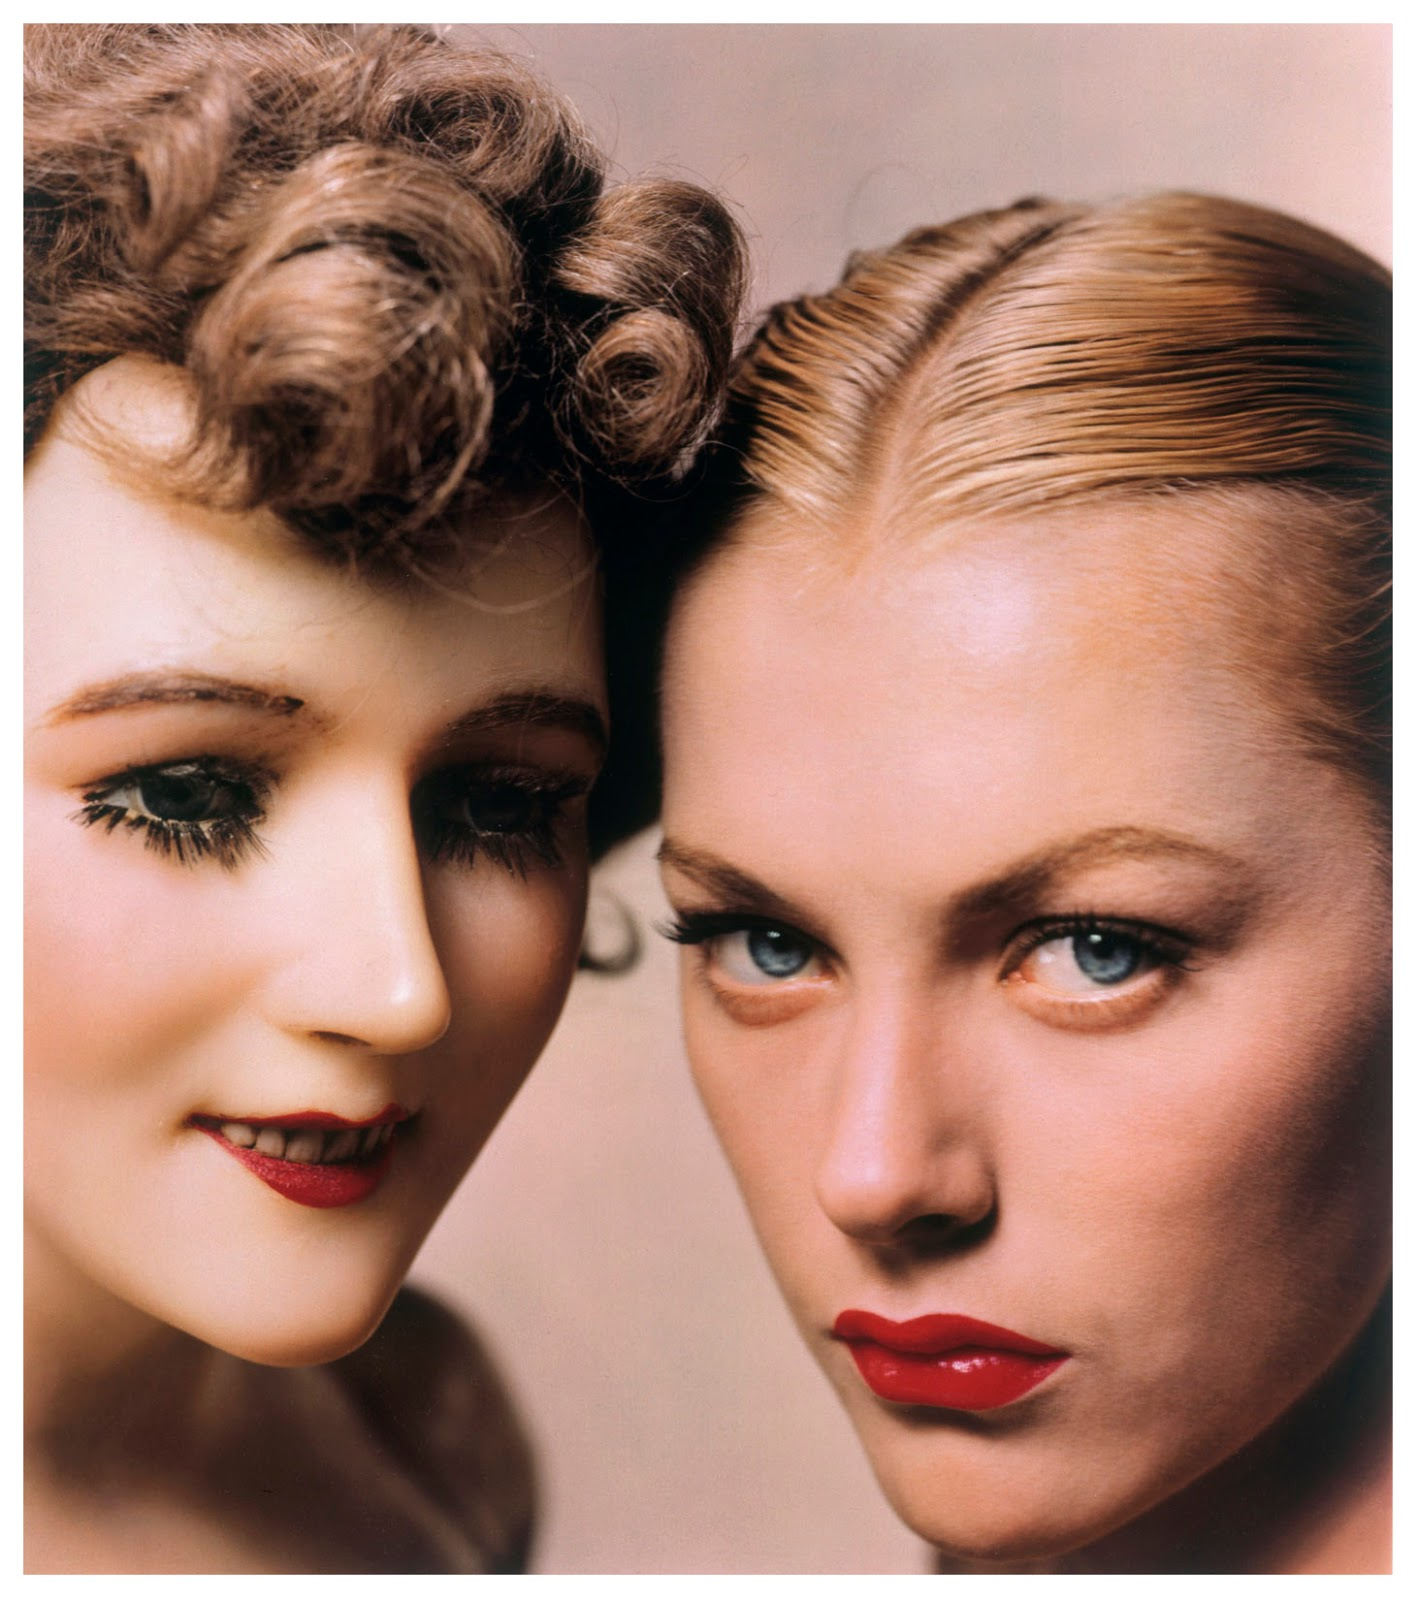 erwin blumenfeld model and mannequin